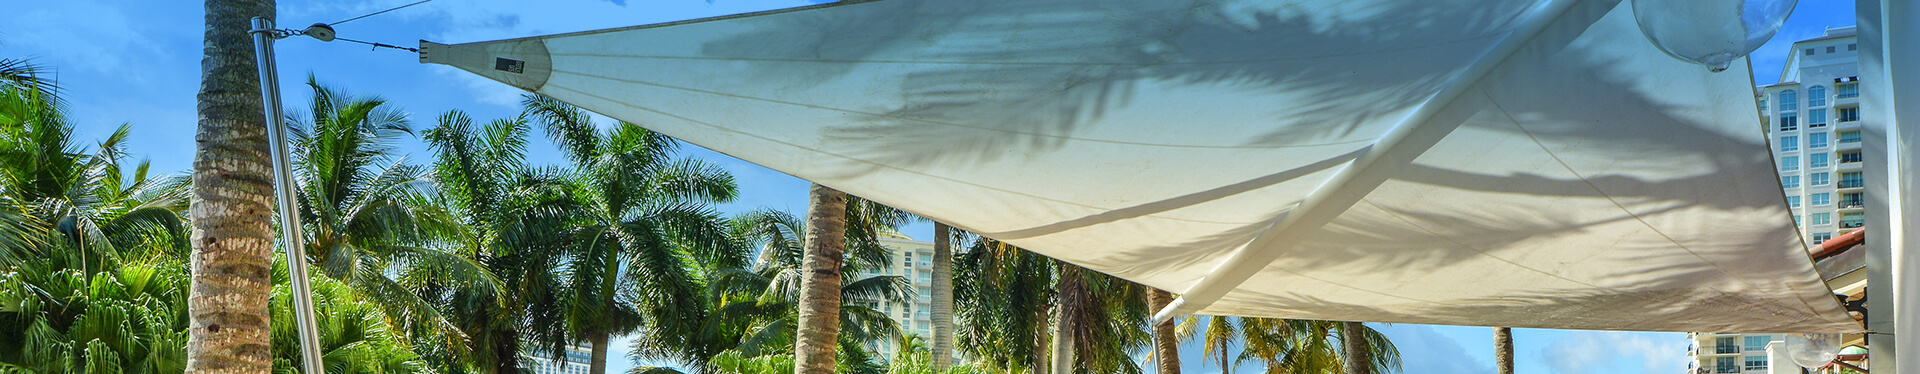 Misting Systems - Our Products | Shade FLA